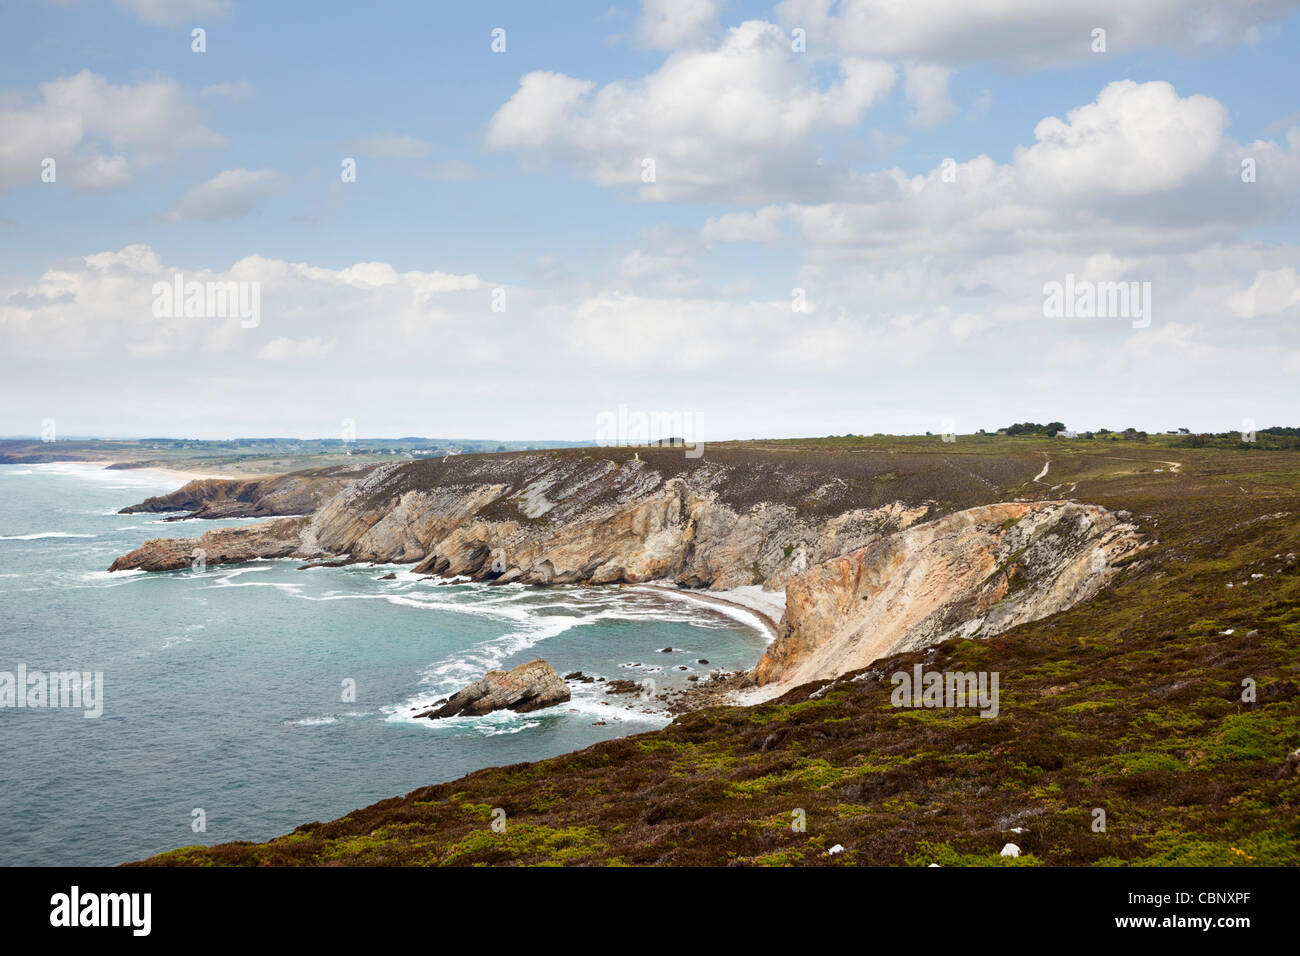 Coastline at Cap de la Chevre, Crozon Peninsula coast, Brittany, France - Stock Image